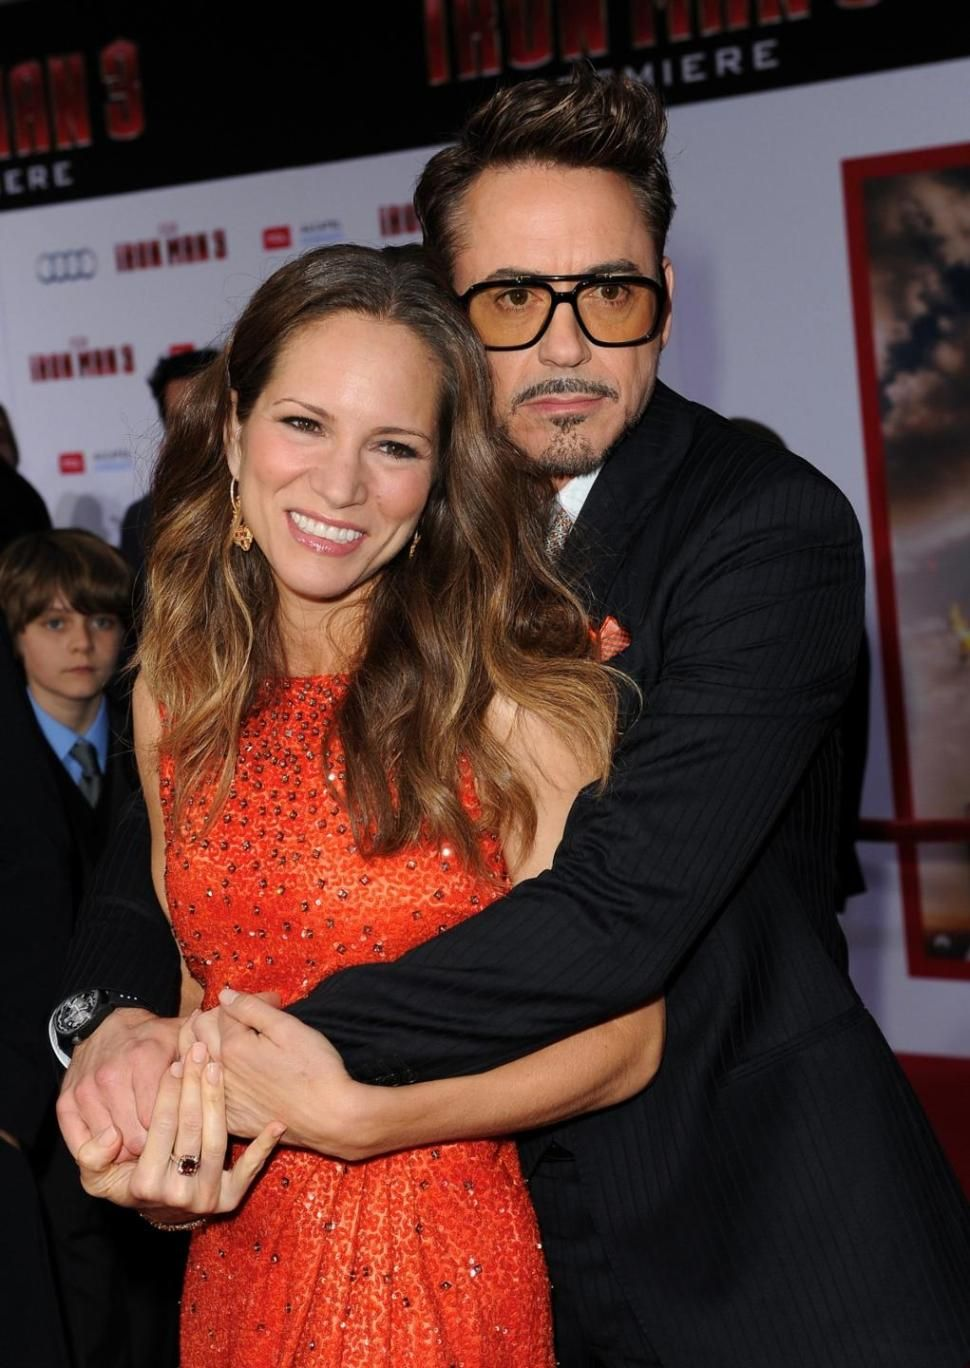 susan downey mdsusan downey twitter, susan downey jr, susan downey instagram, susan downey tumblr, susan downey, susan downey matt damon, susan downey height, susan downey interview, susan downey imdb, susan downey facebook, susan downey wedding, susan downey net worth, susan downey movies, susan downey vikipedi, susan downey baby, susan downey md, susan downey the judge, susan downey iron man 2, susan downey images, susan downey jewish